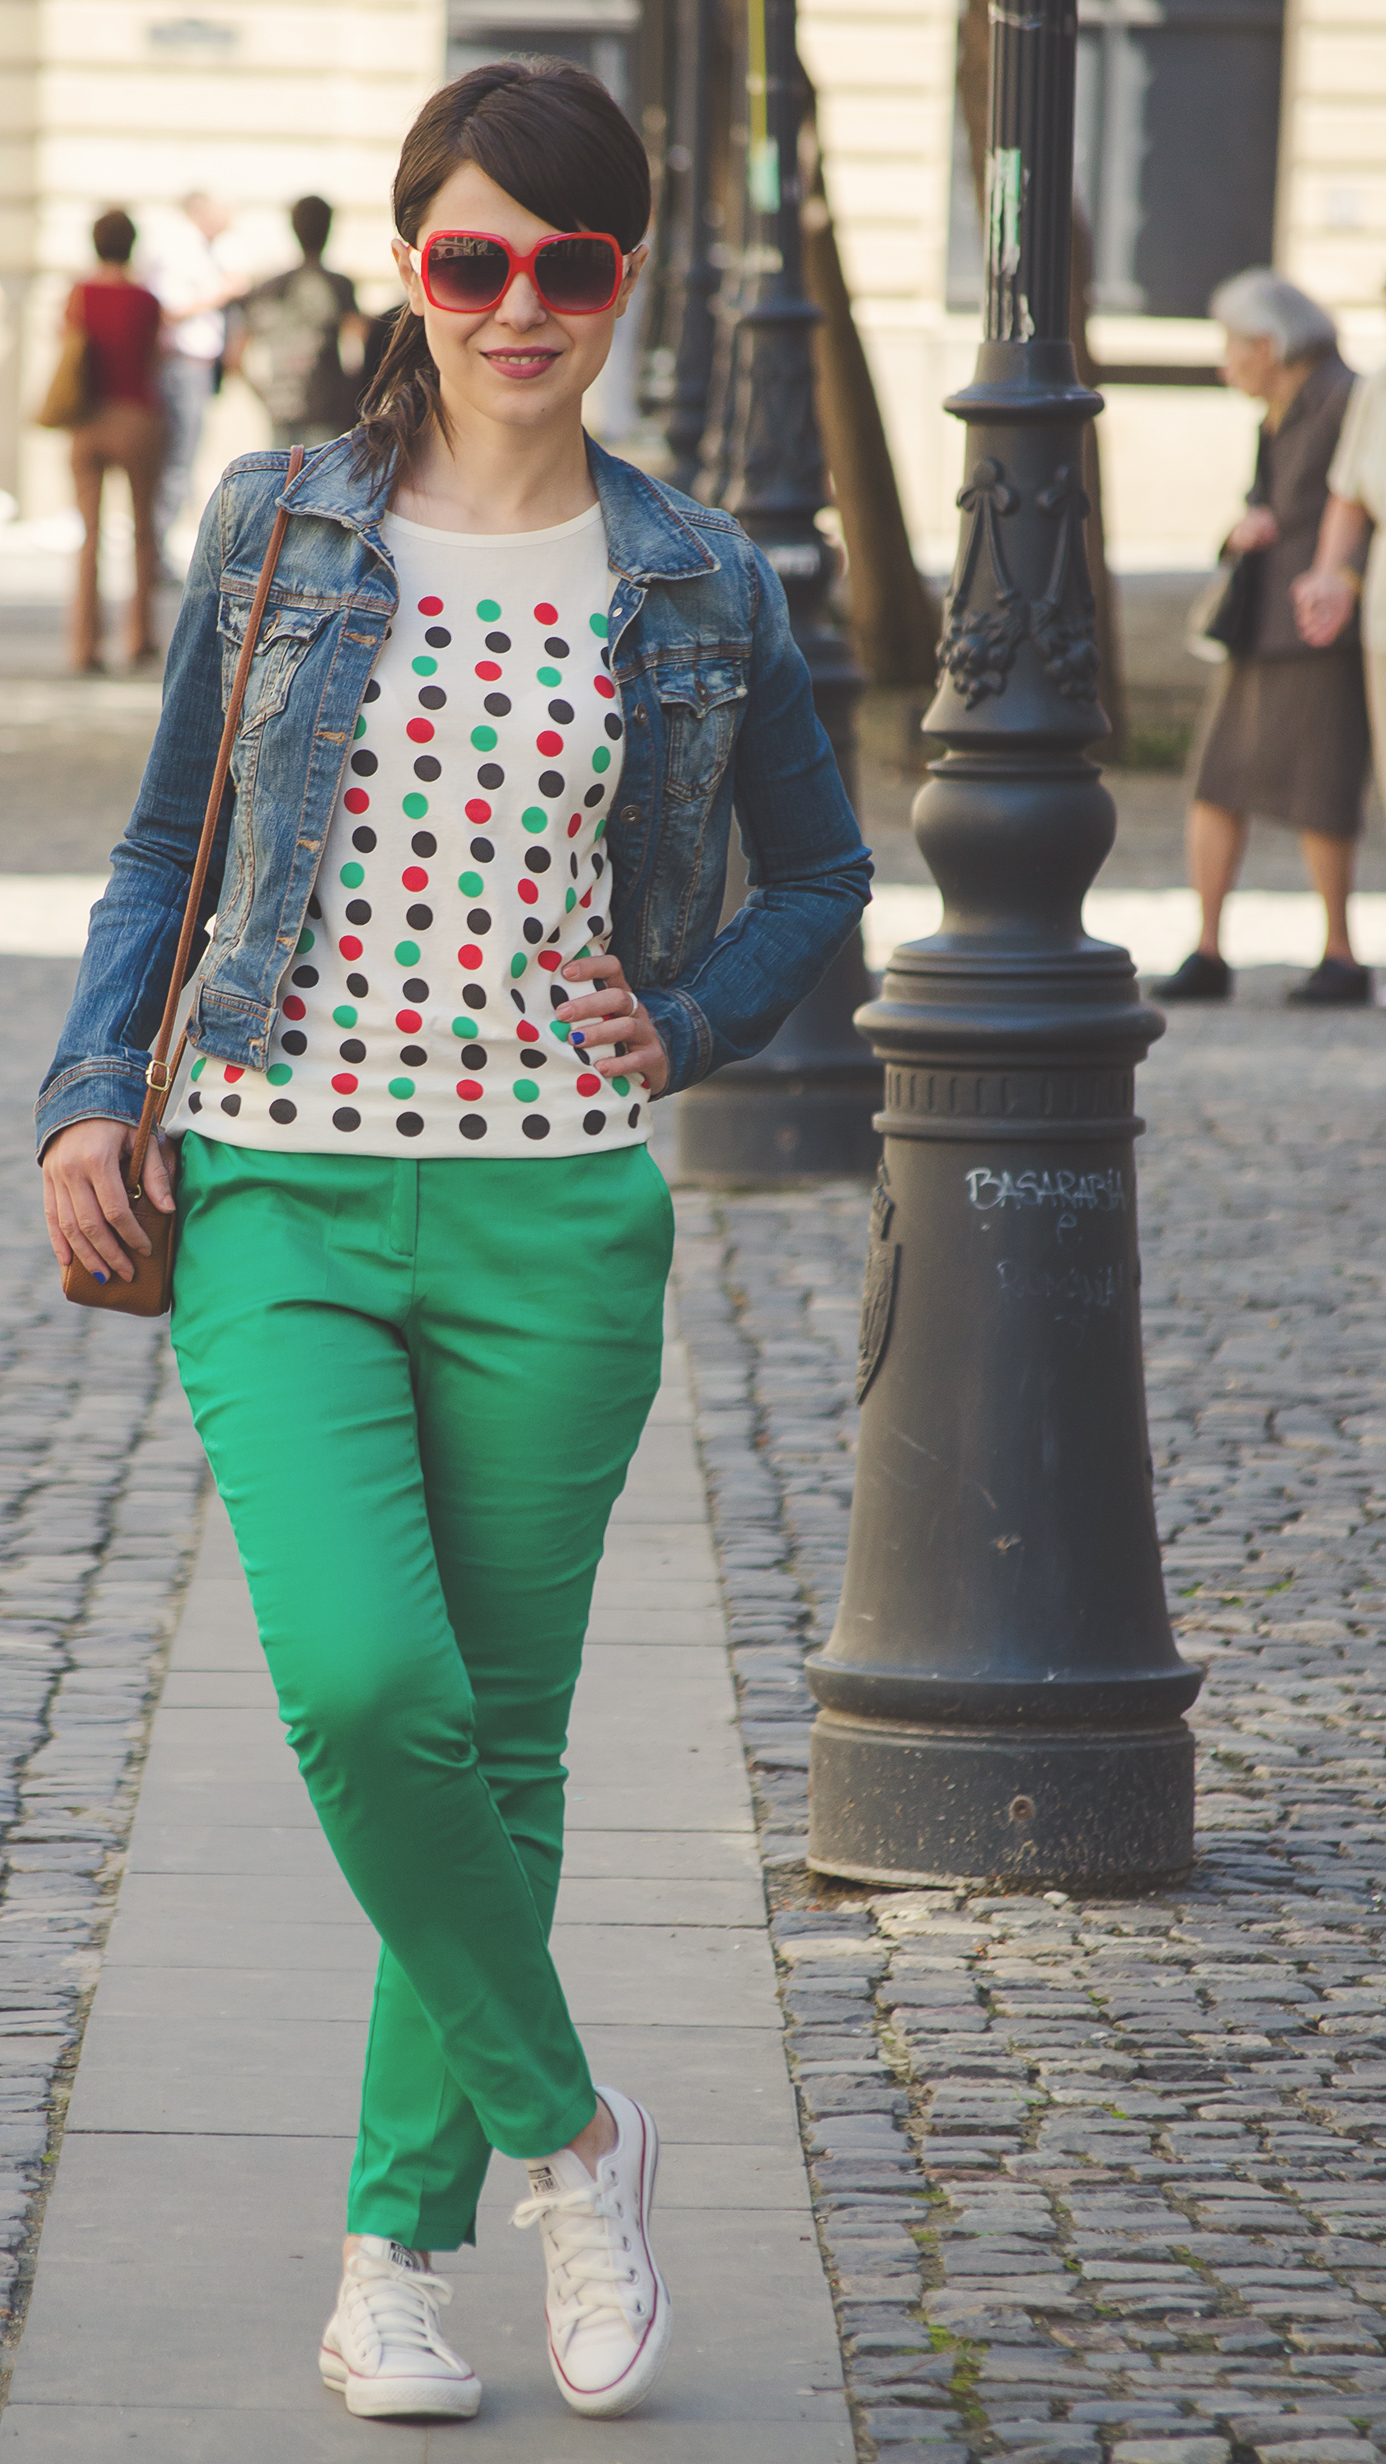 dotted t-shirt colourful dots ankle cut green pants converse sneakers jeans jacket Stradivarius brown h&m satchel bag red sunglasses